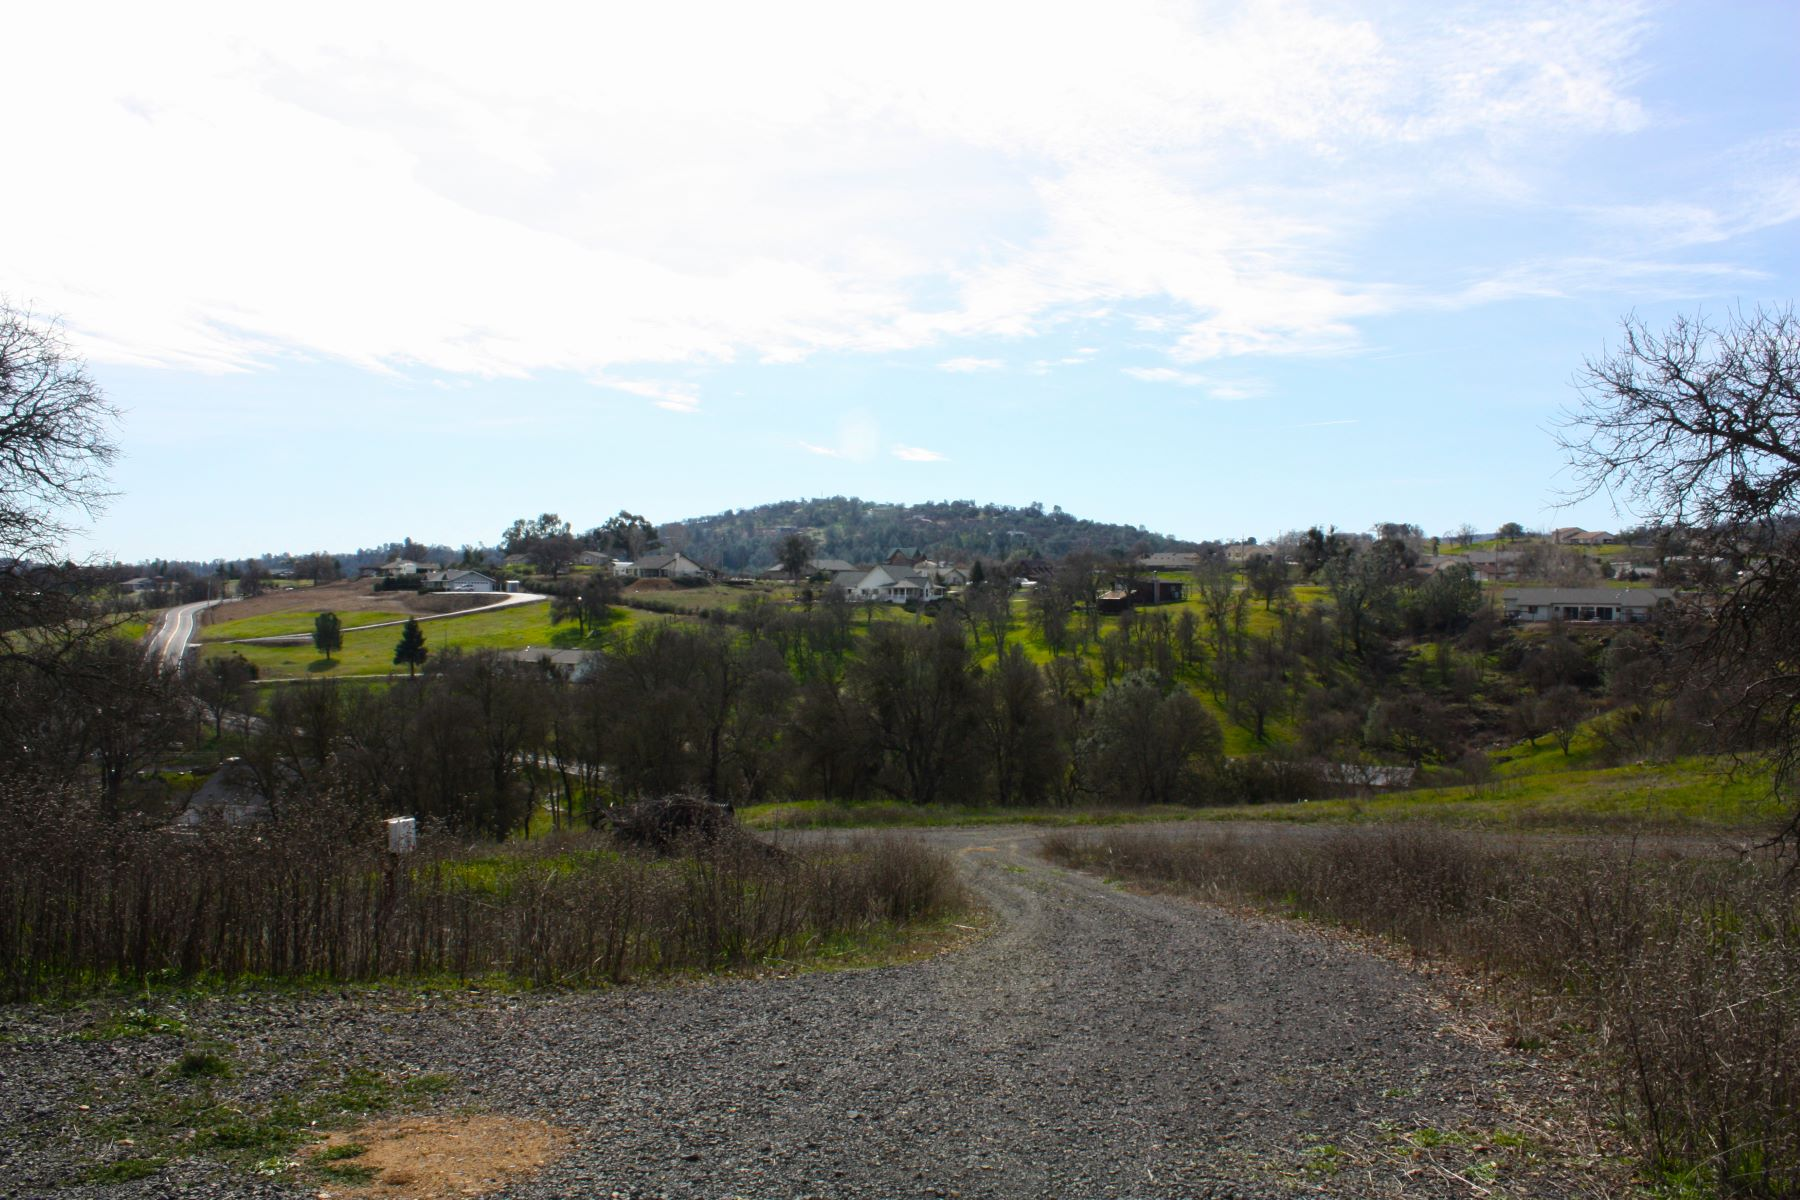 Land for Sale at Lot with Level Building Pad & Views 1833 Choctaw Road Copperopolis, California 95228 United States